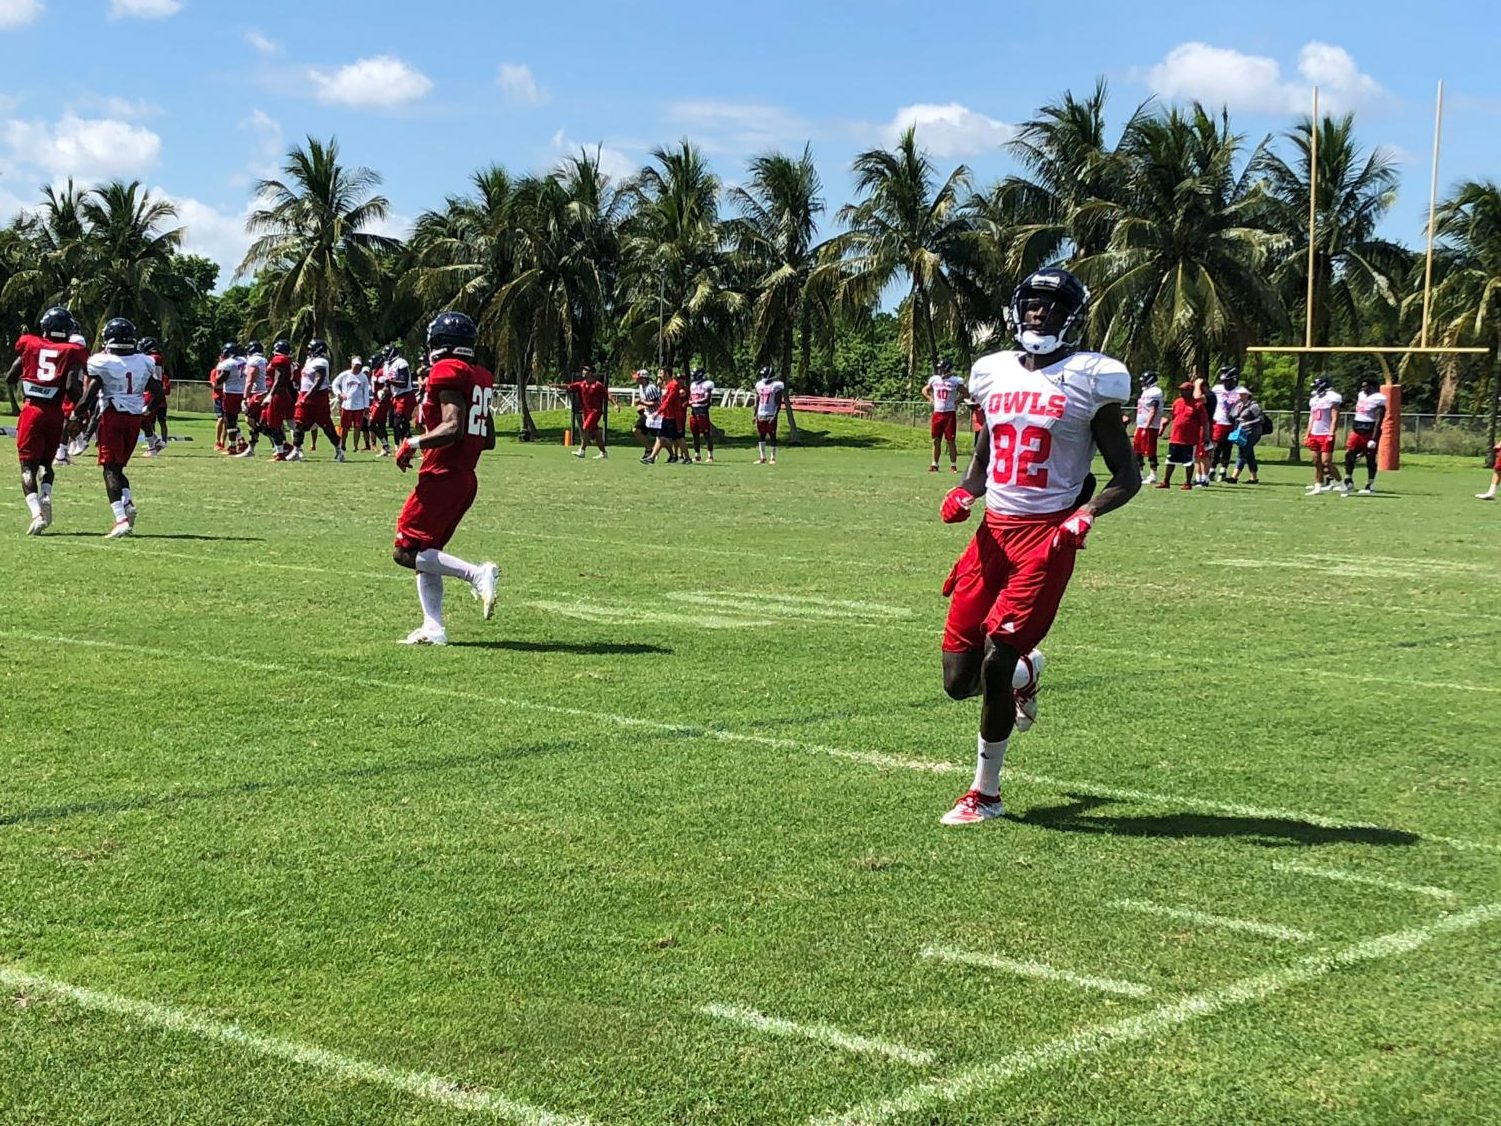 Wide receivers and defensive backs practicing drills at training camp Sunday morning. Photo by: Colby Guy